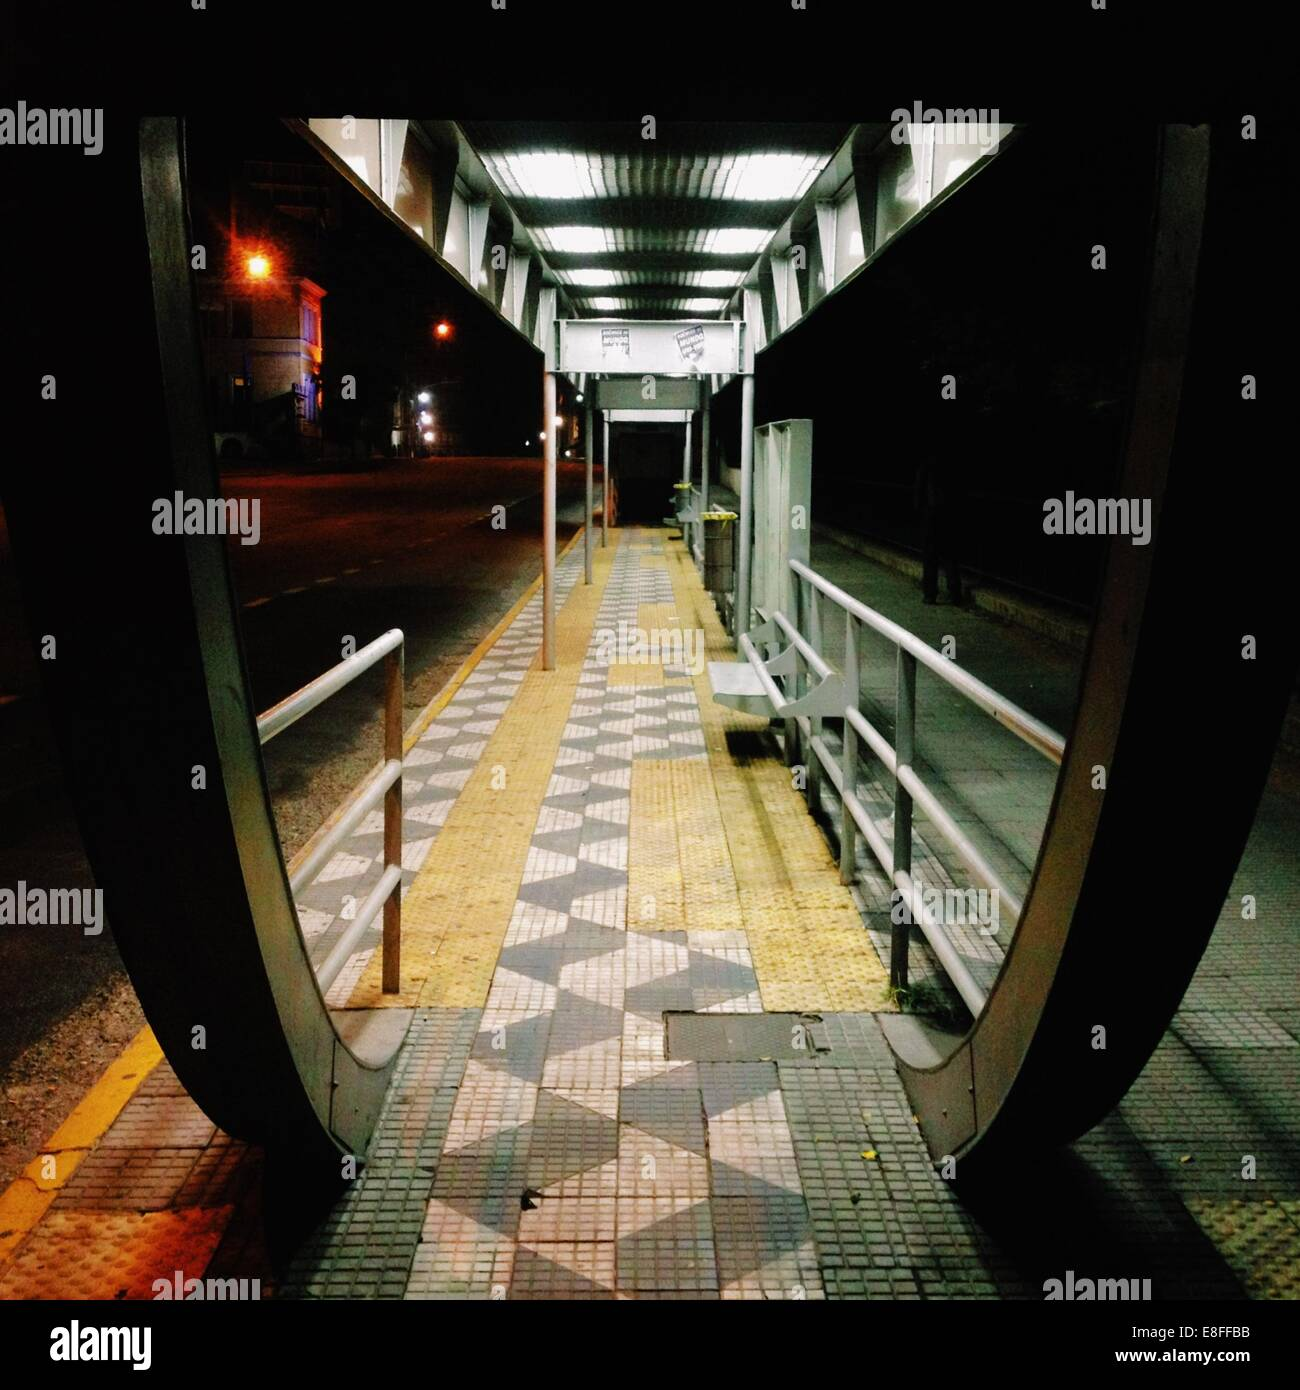 Brazil, Sao Paulo, Bus Stop at night - Stock Image